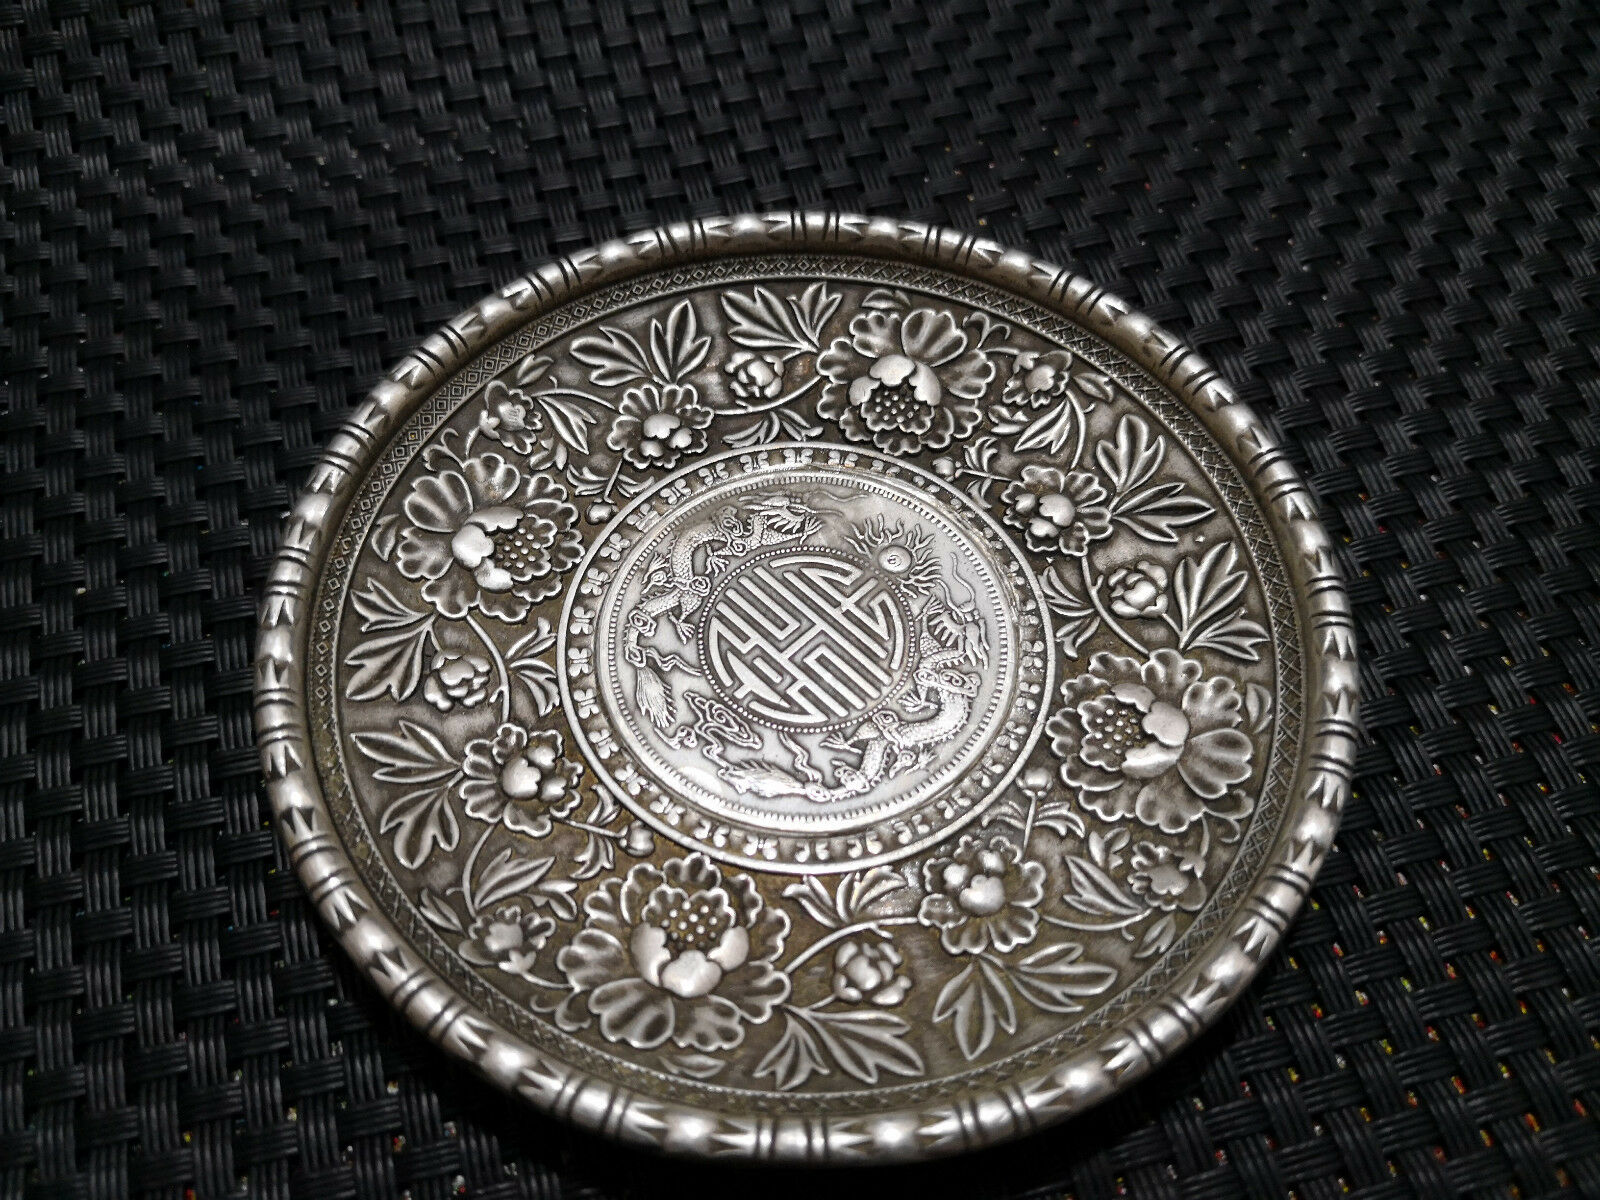 CHINEA FOLK old Carved Tibetan silver plate Ssangyong Yuan Shikai ornaments A20